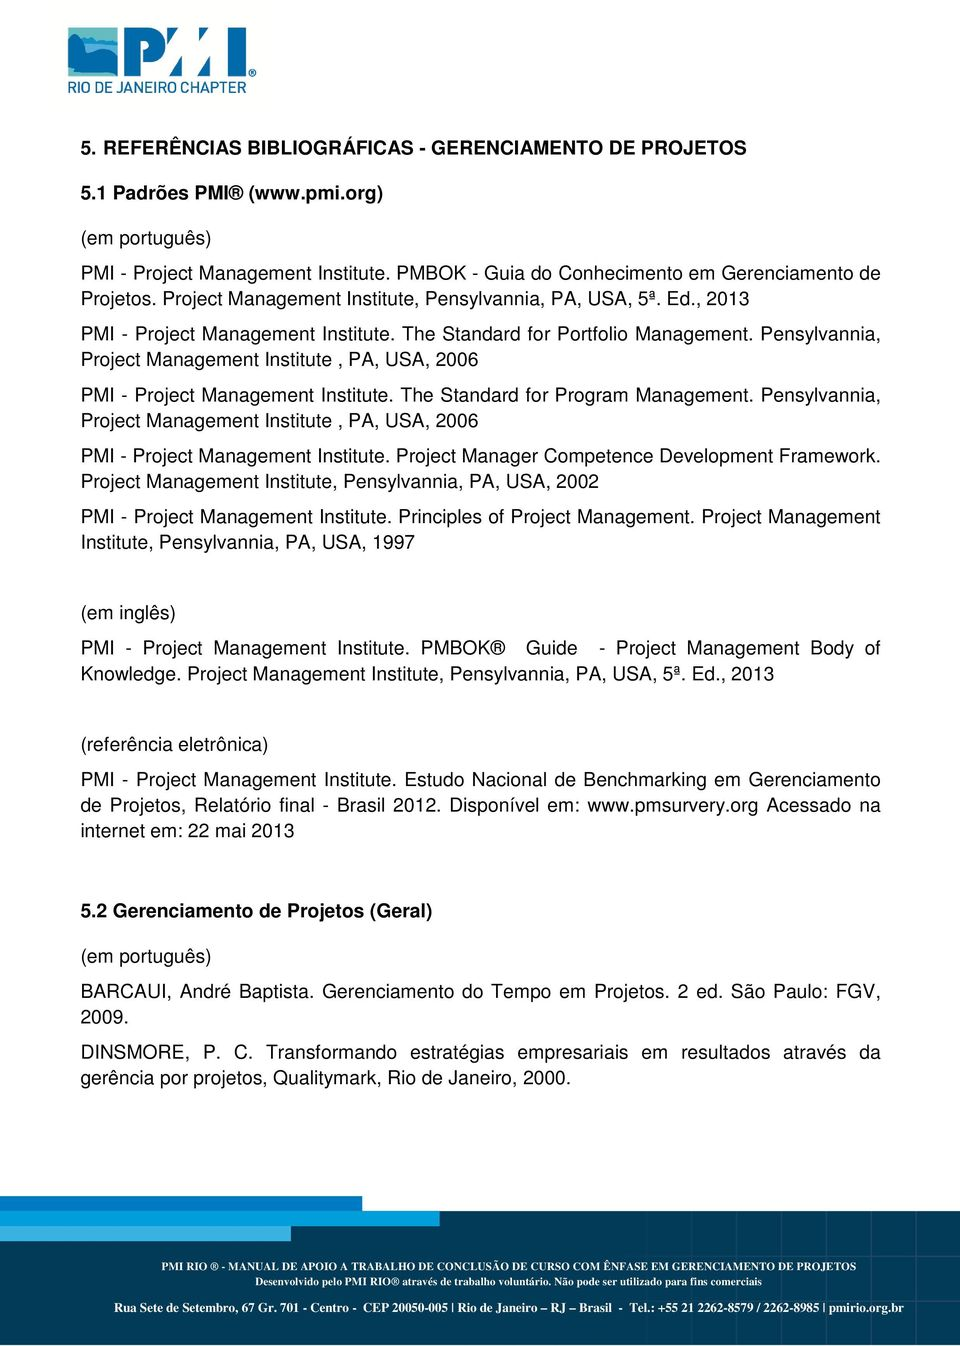 Pensylvannia, Project Management Institute, PA, USA, 2006 PMI - Project Management Institute. The Standard for Program Management.